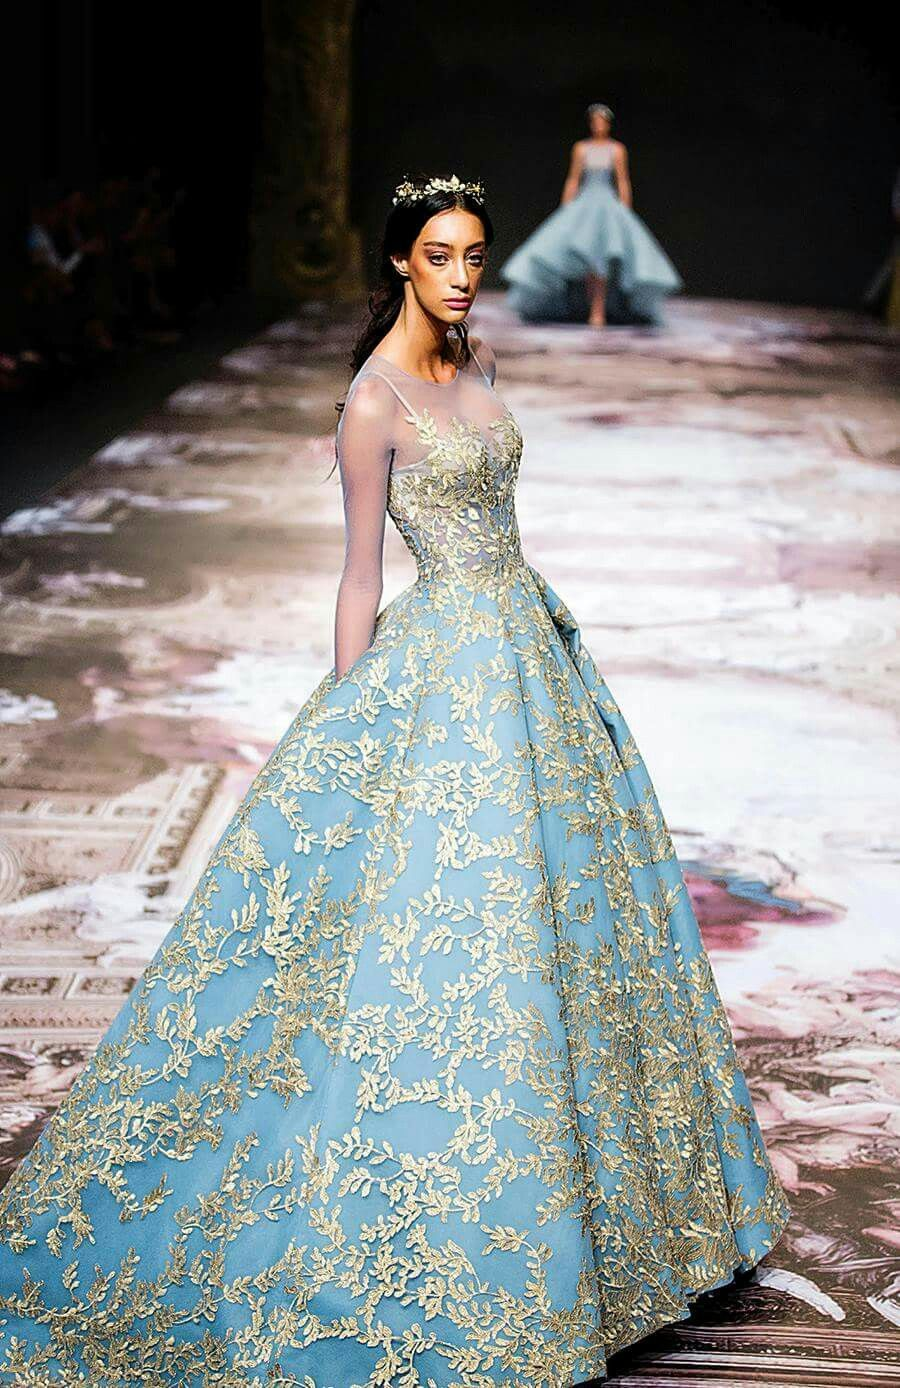 Stunning Light Blue And Gold Gown Fantasy Dresses In 2019